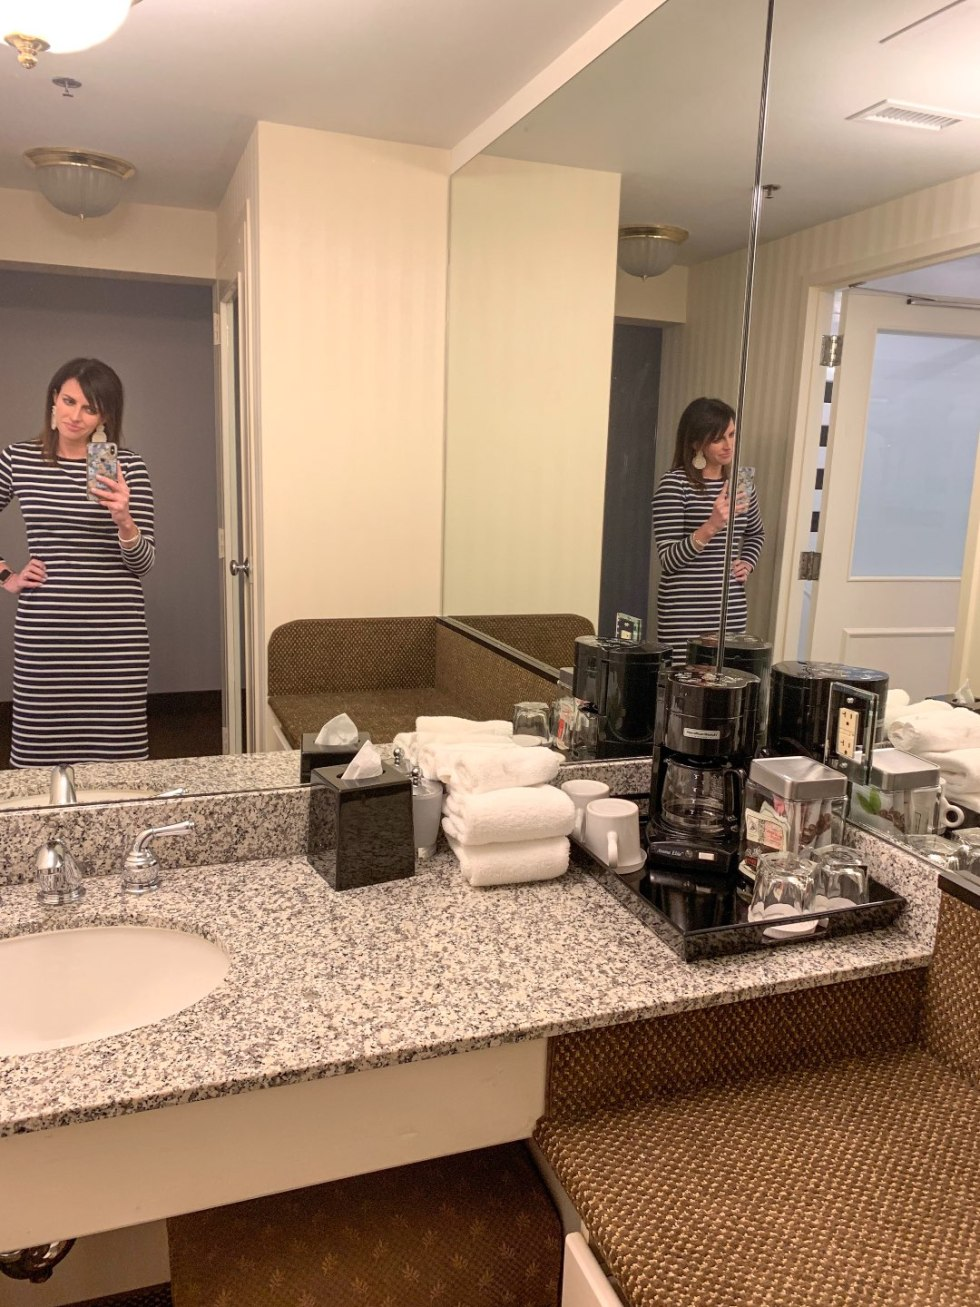 A Night at the O.Henry Hotel In Greensboro, NC - I'm Fixin' To - @mbg0112 | A Night at the O.Henry Hotel In Greensboro, NC by popular North Carolina blog, I'm fixin' To: image of a woman in a black and white stripe dress taking a picture in the mirror at the O. Henry Hotel.